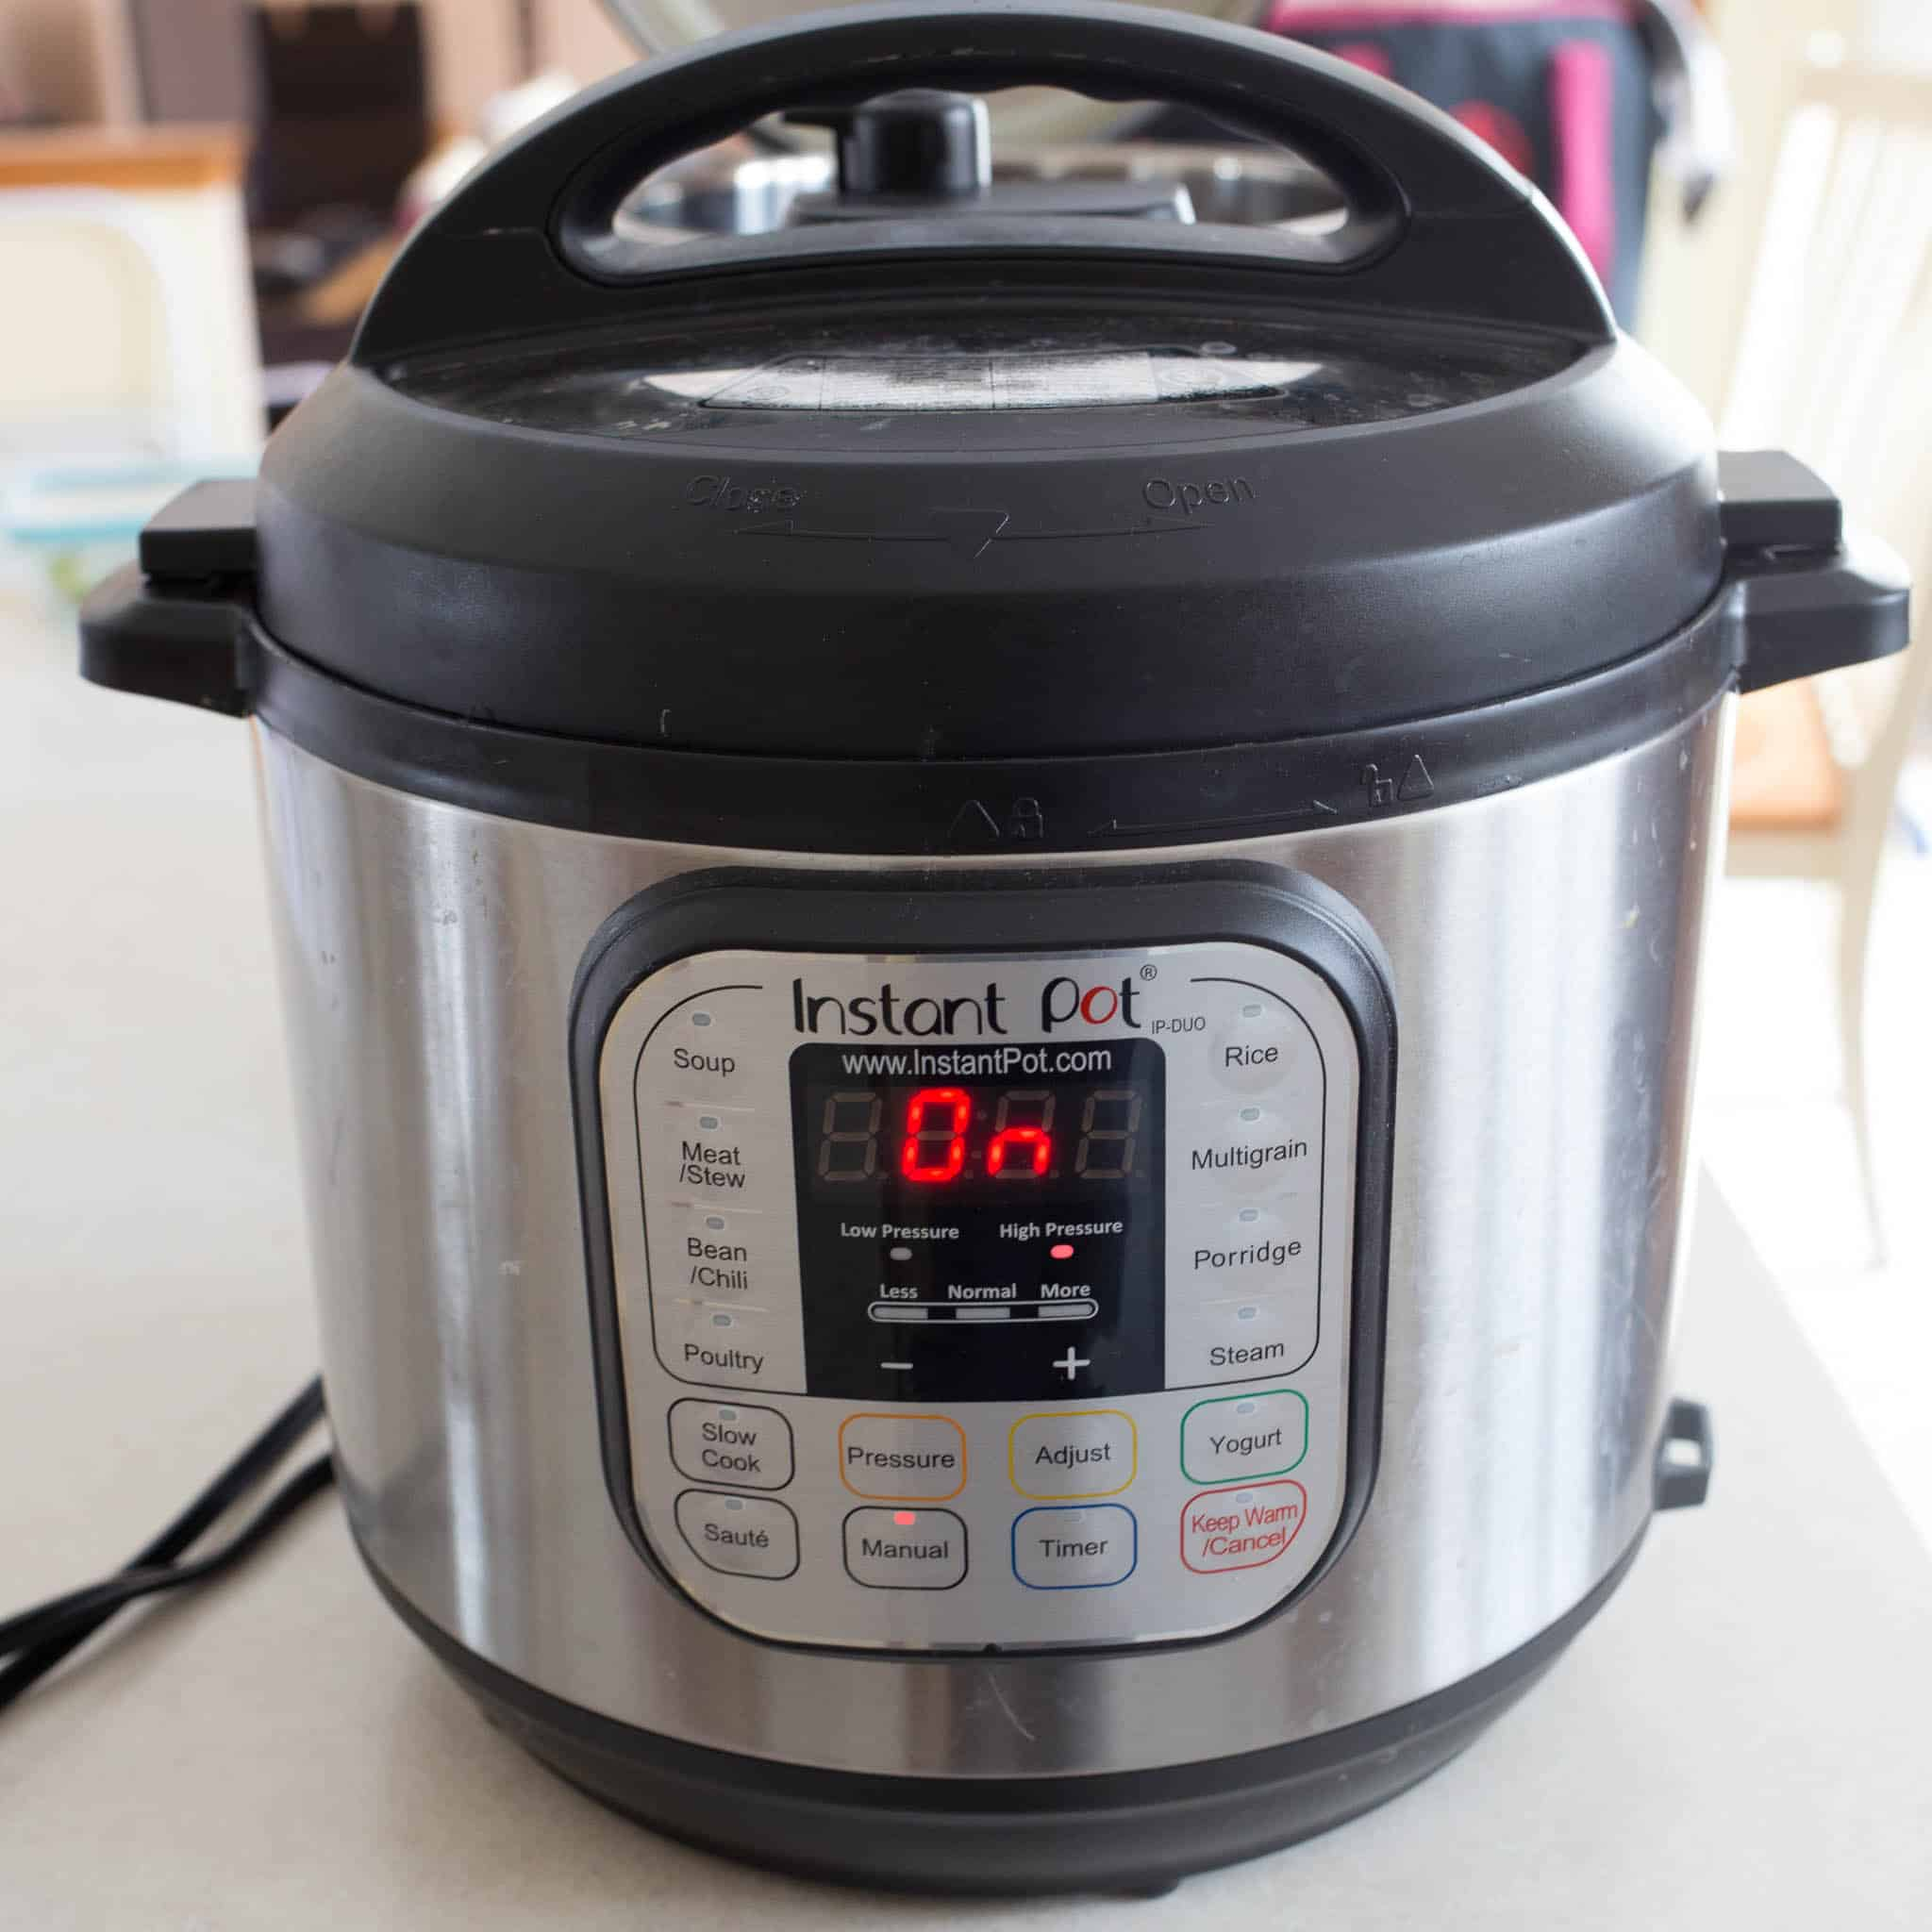 Instant Pot Pressure Cooker: Giveaway- Instant Pot Duo Electric Pressure Cooker